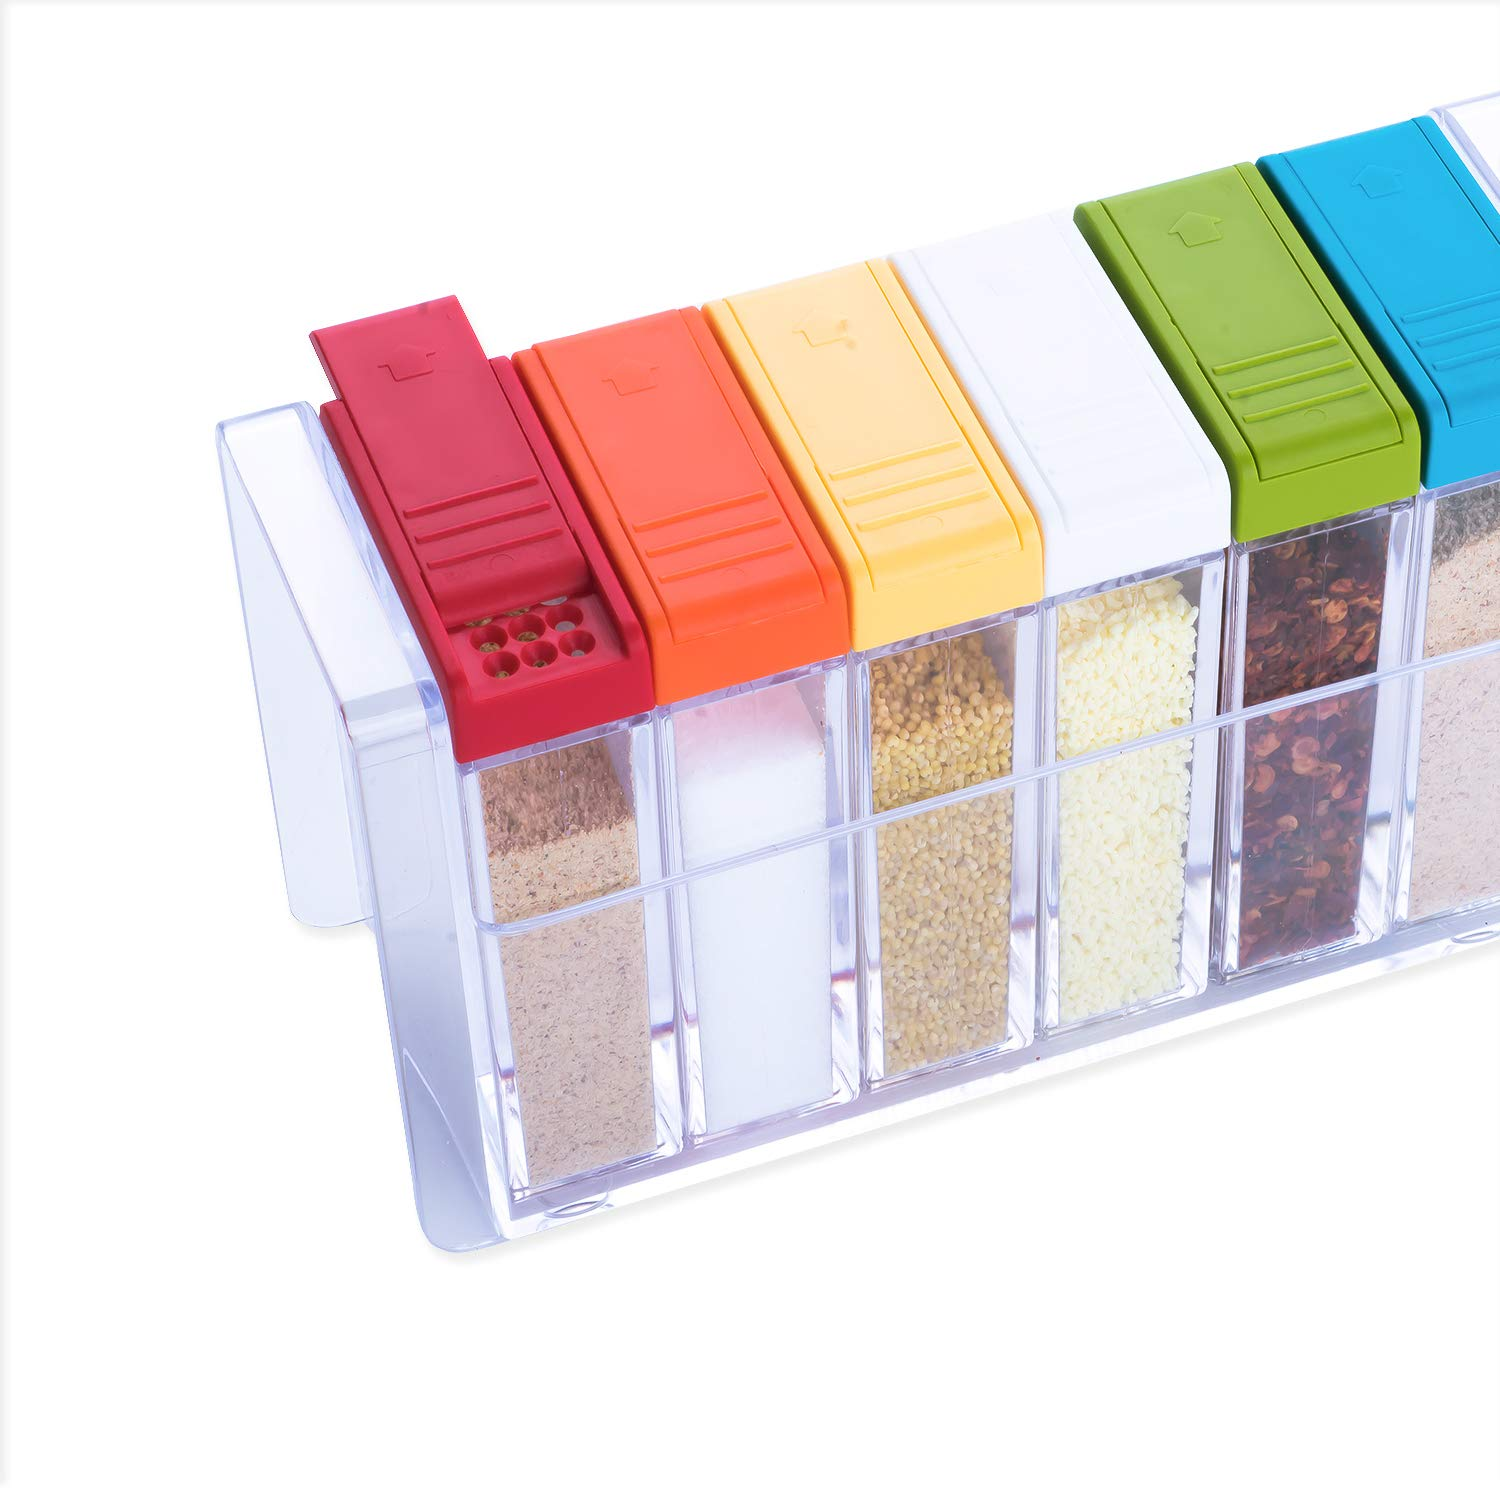 Kary Chef Set of 6 Spice Shaker Jars Seasoning Box,Condiment Jar Storage Container with Tray for Salt Sugar Cruet Pepper,Colorful